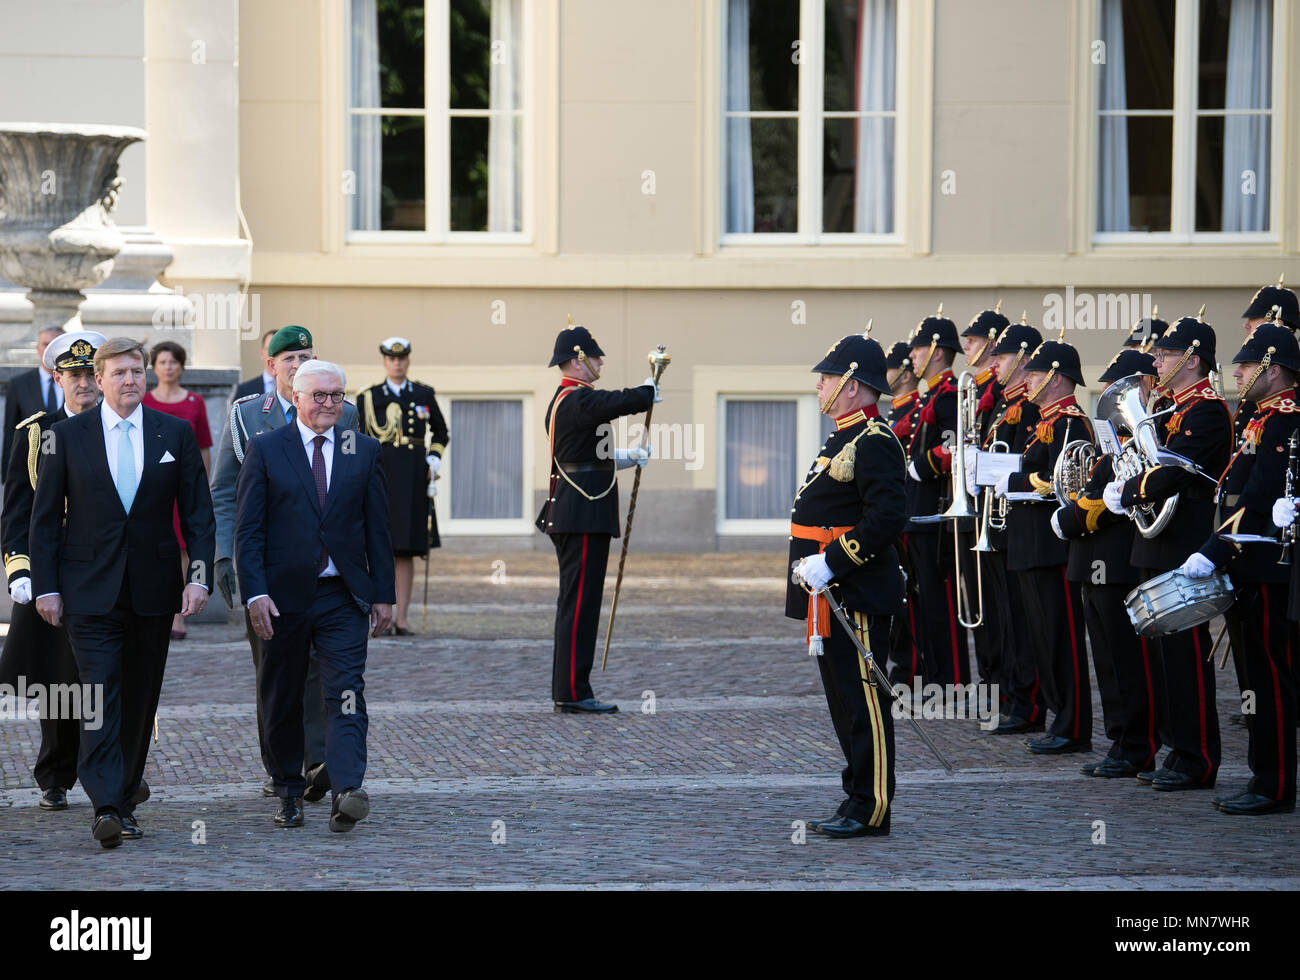 Amsterdam, The Netherlands. 15th May, 2018. German President Frank-Walter Steinmeier (C) is greeted with miliary honours by the King of the Netherlands, King Willem-Alexander (L), in the Palace Gardens. Photo: Soeren Stache/dpa Credit: dpa picture alliance/Alamy Live News Stock Photo